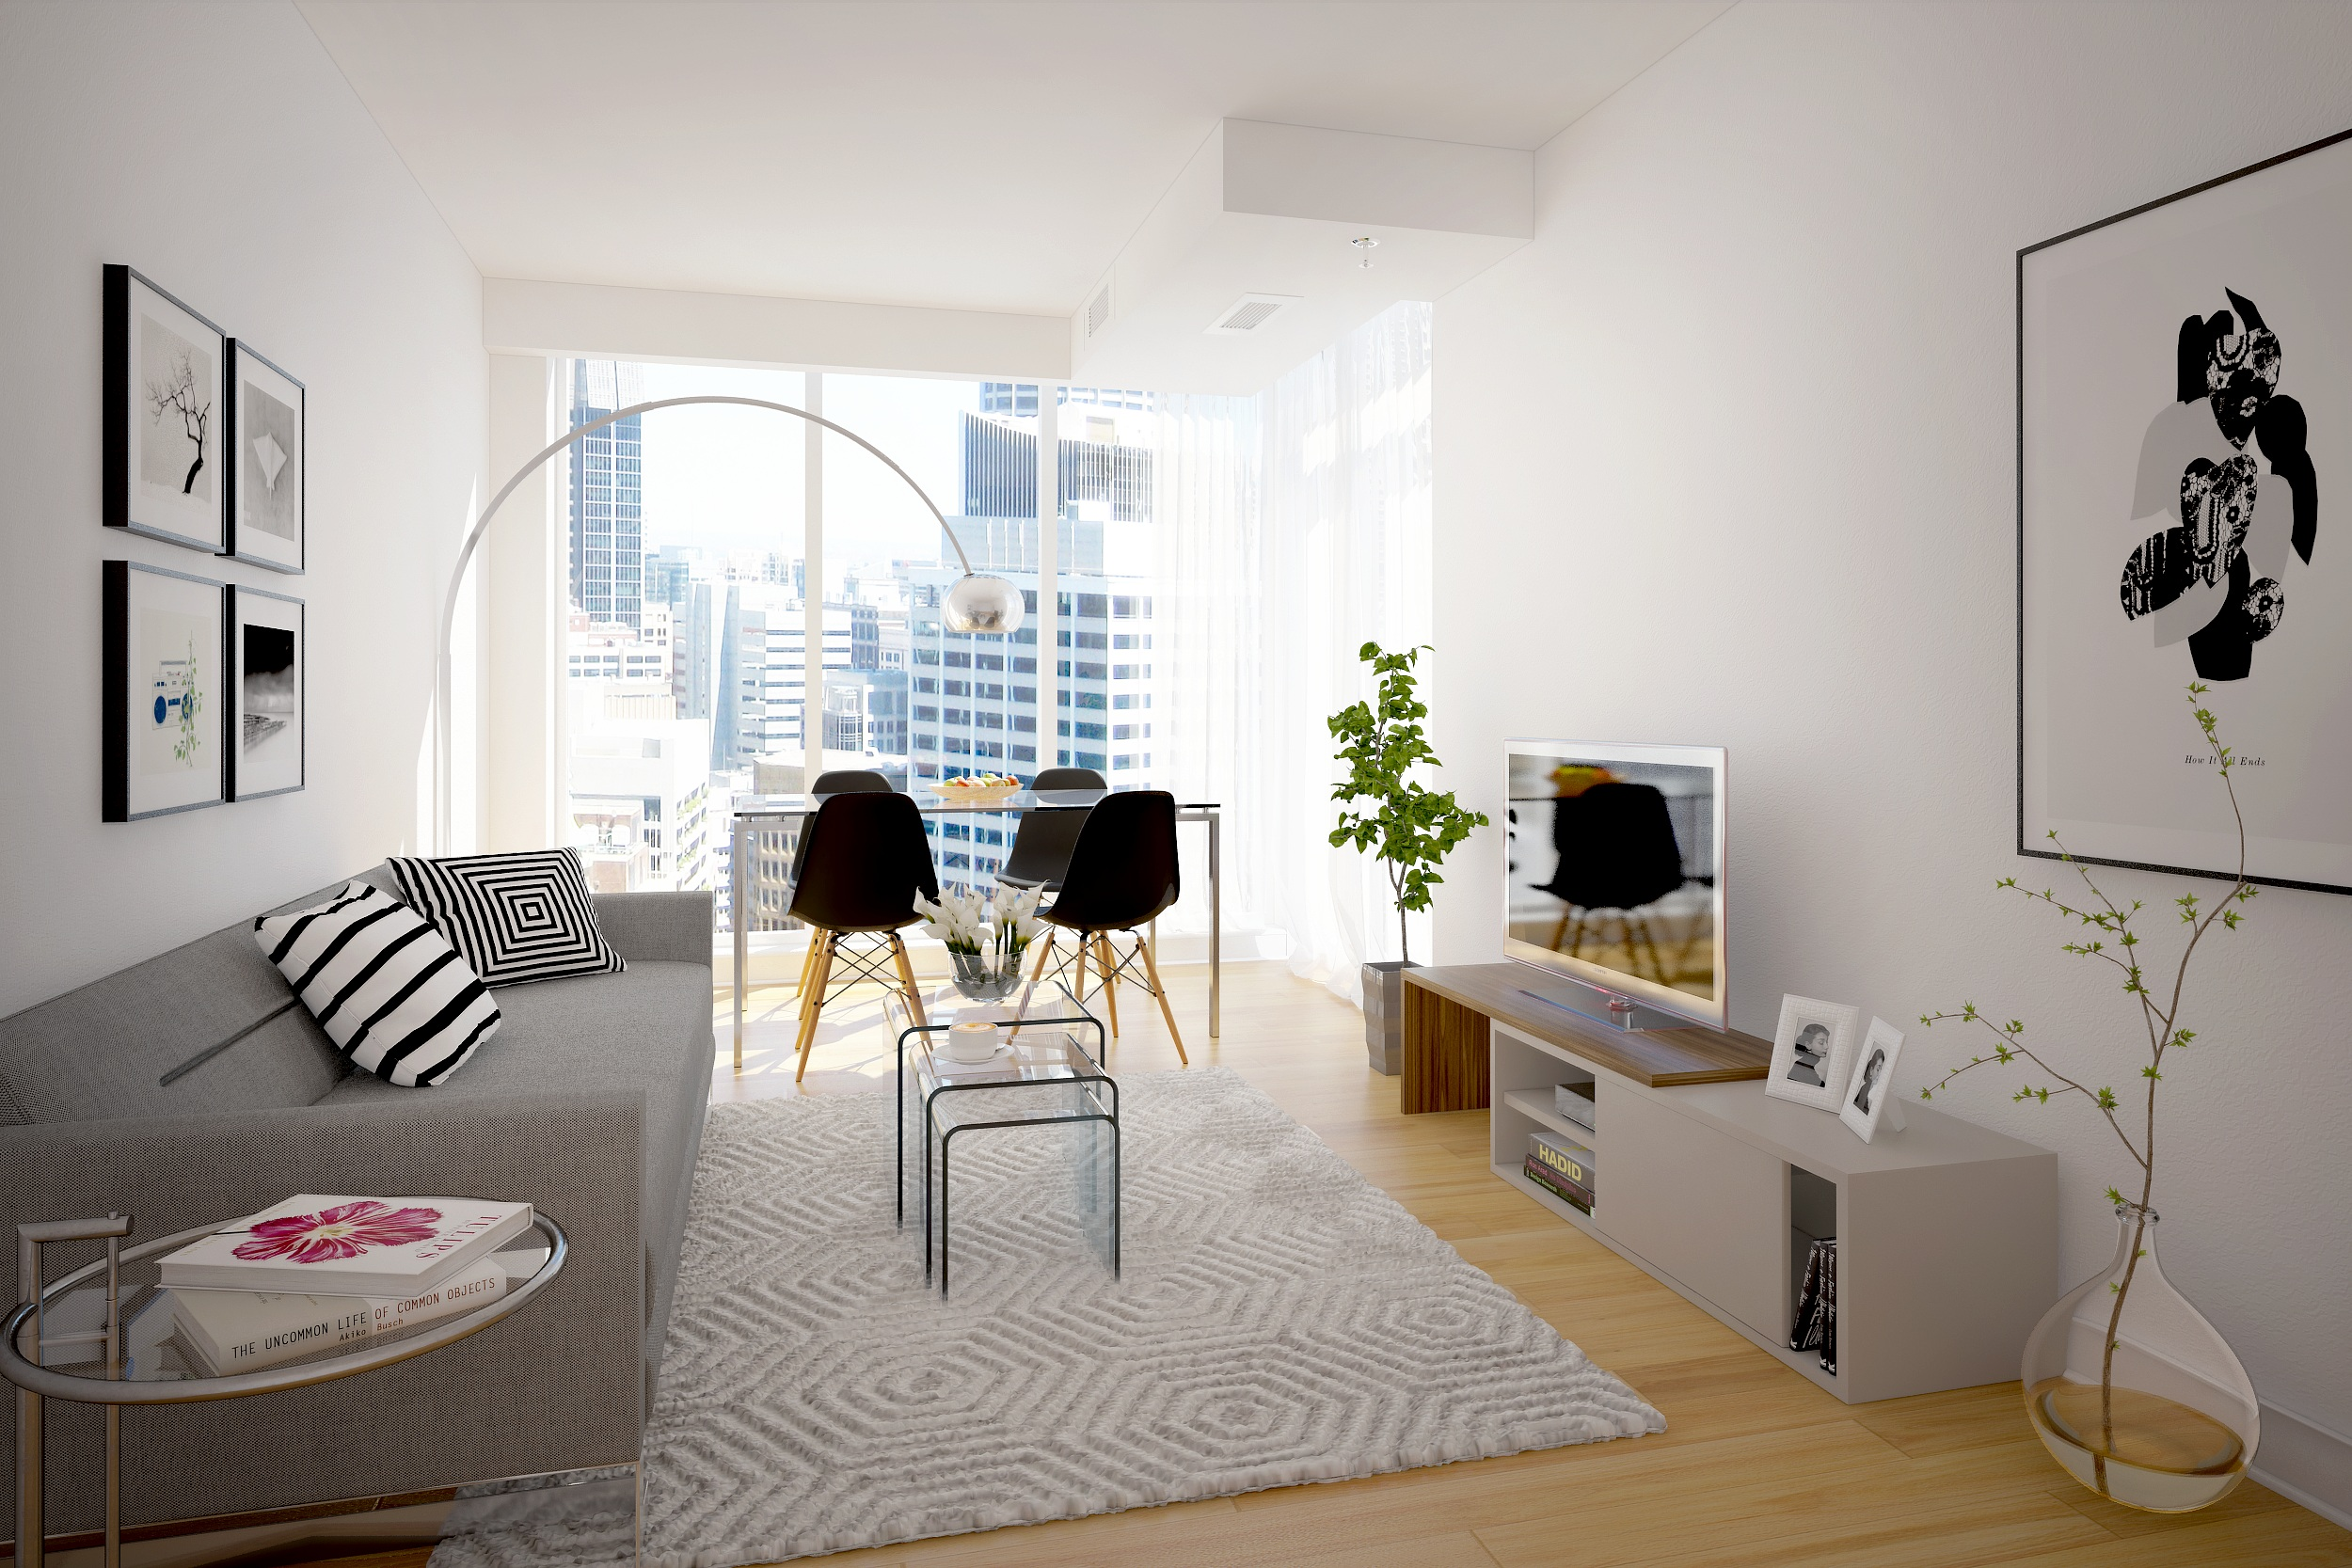 ja glass color rendering penthouse nyc services pools new restaurant with bedroom apps dropping jaw city whee internships york design forbes homes interior private